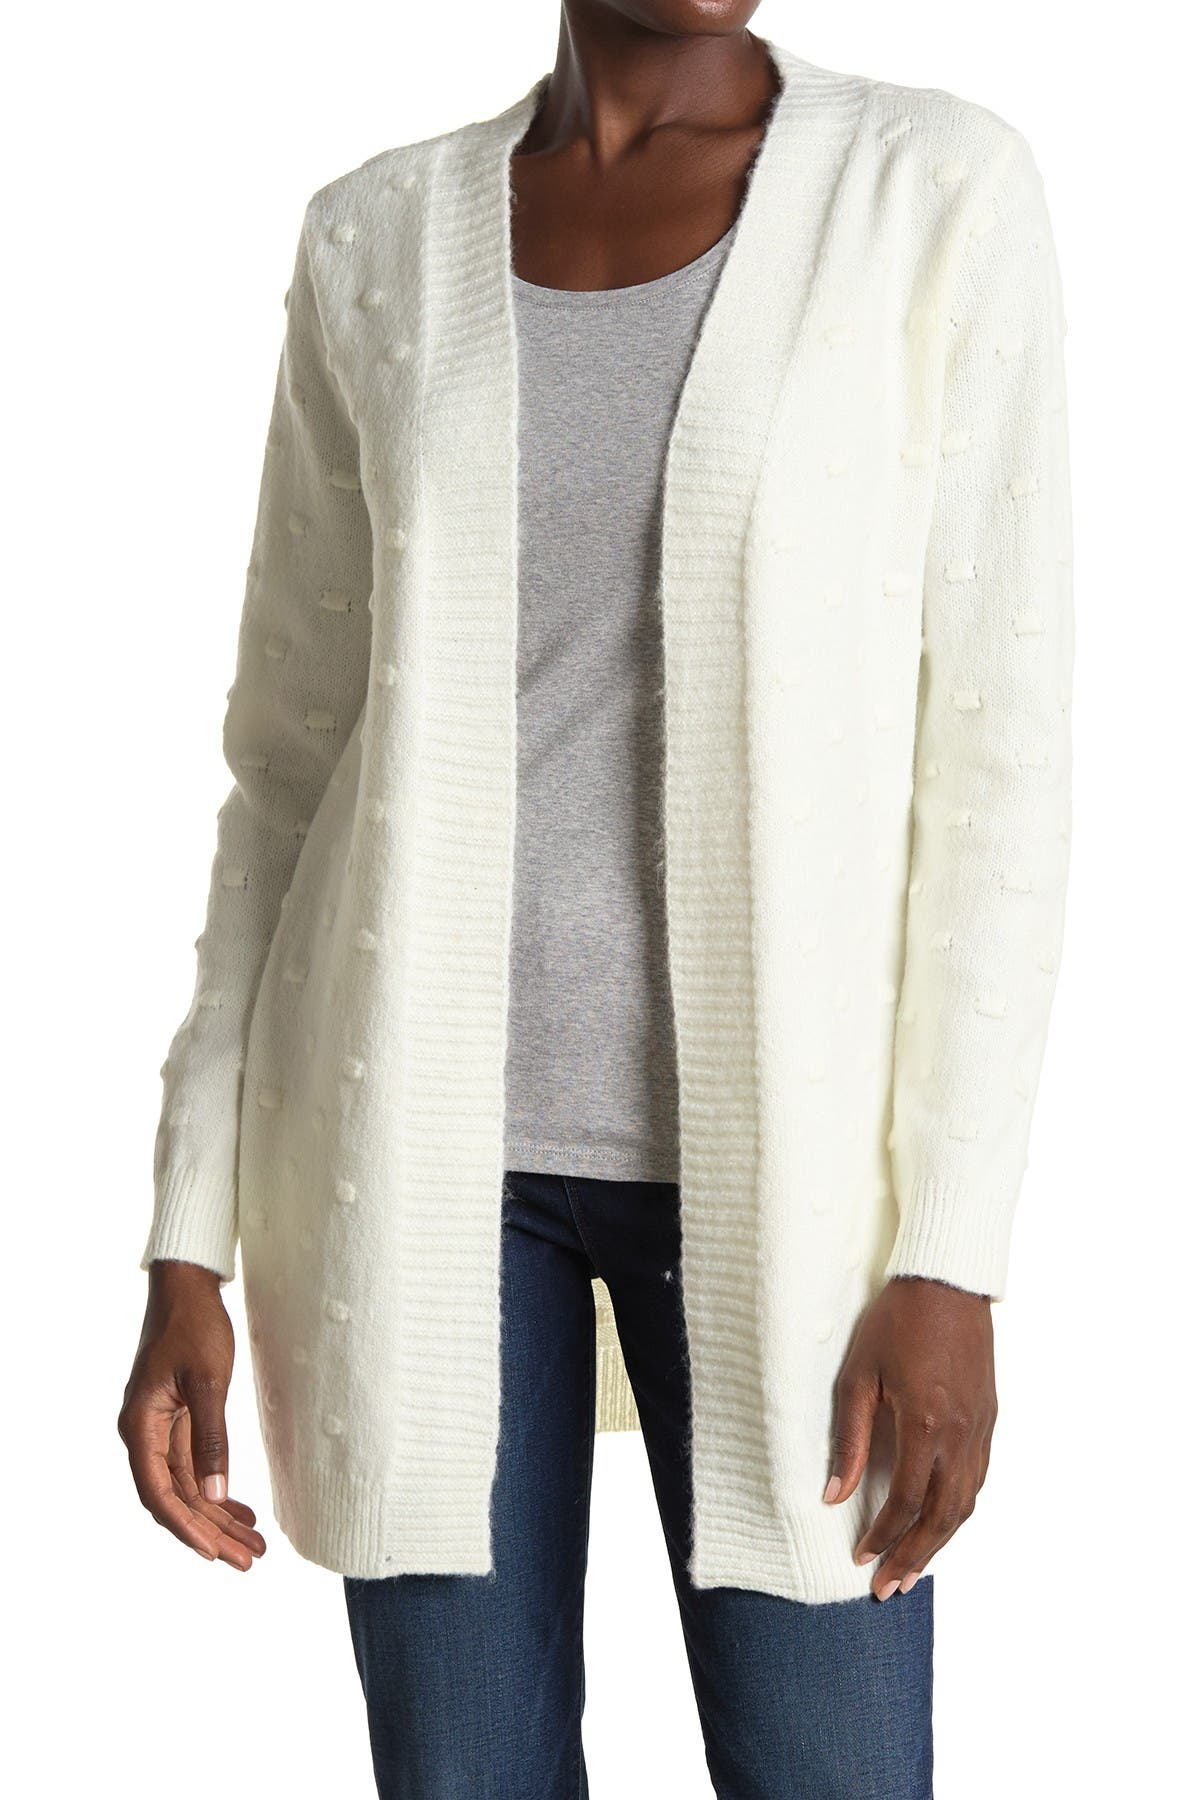 Image of Love by Design Maribel Bobble Stitch Cardigan